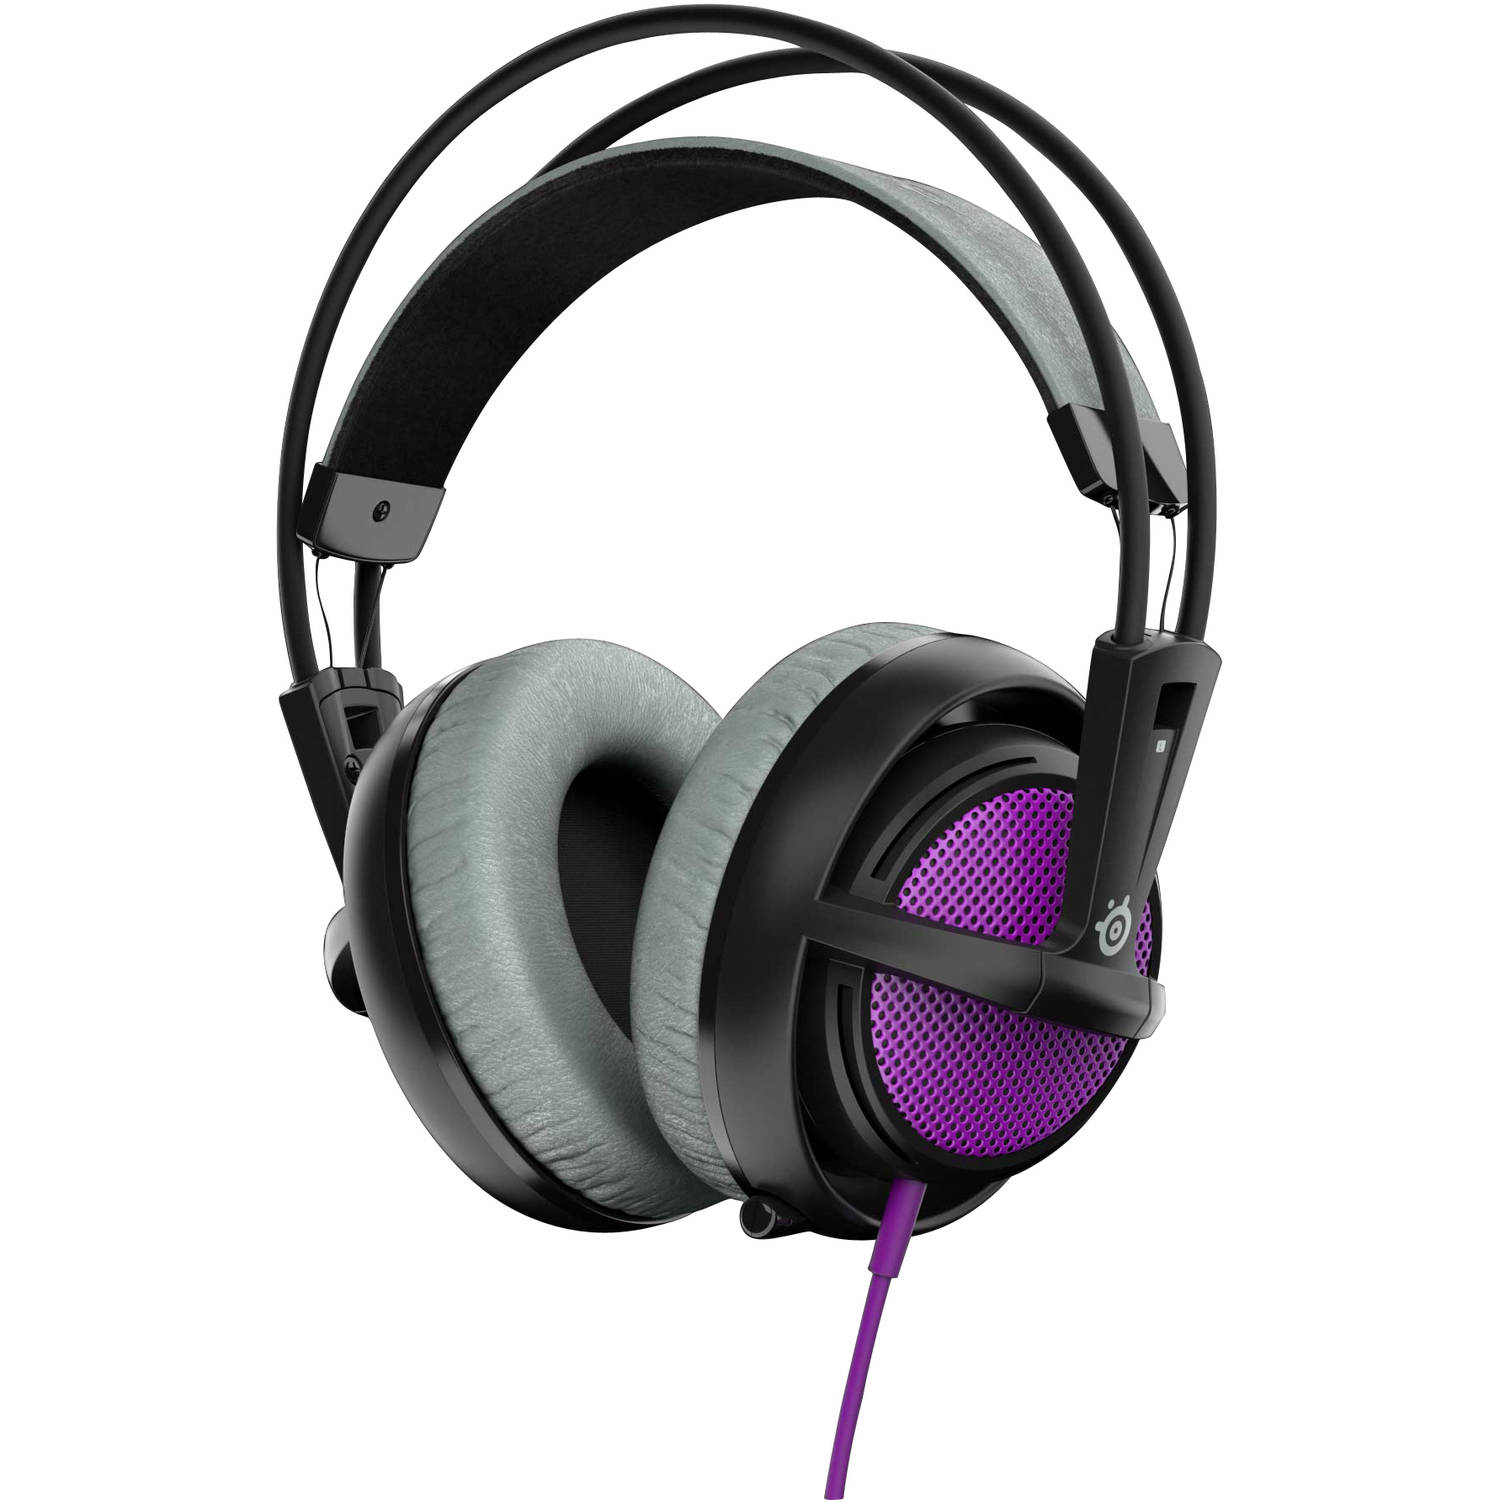 SteelSeries Siberia 200 Headset, Black/Purple